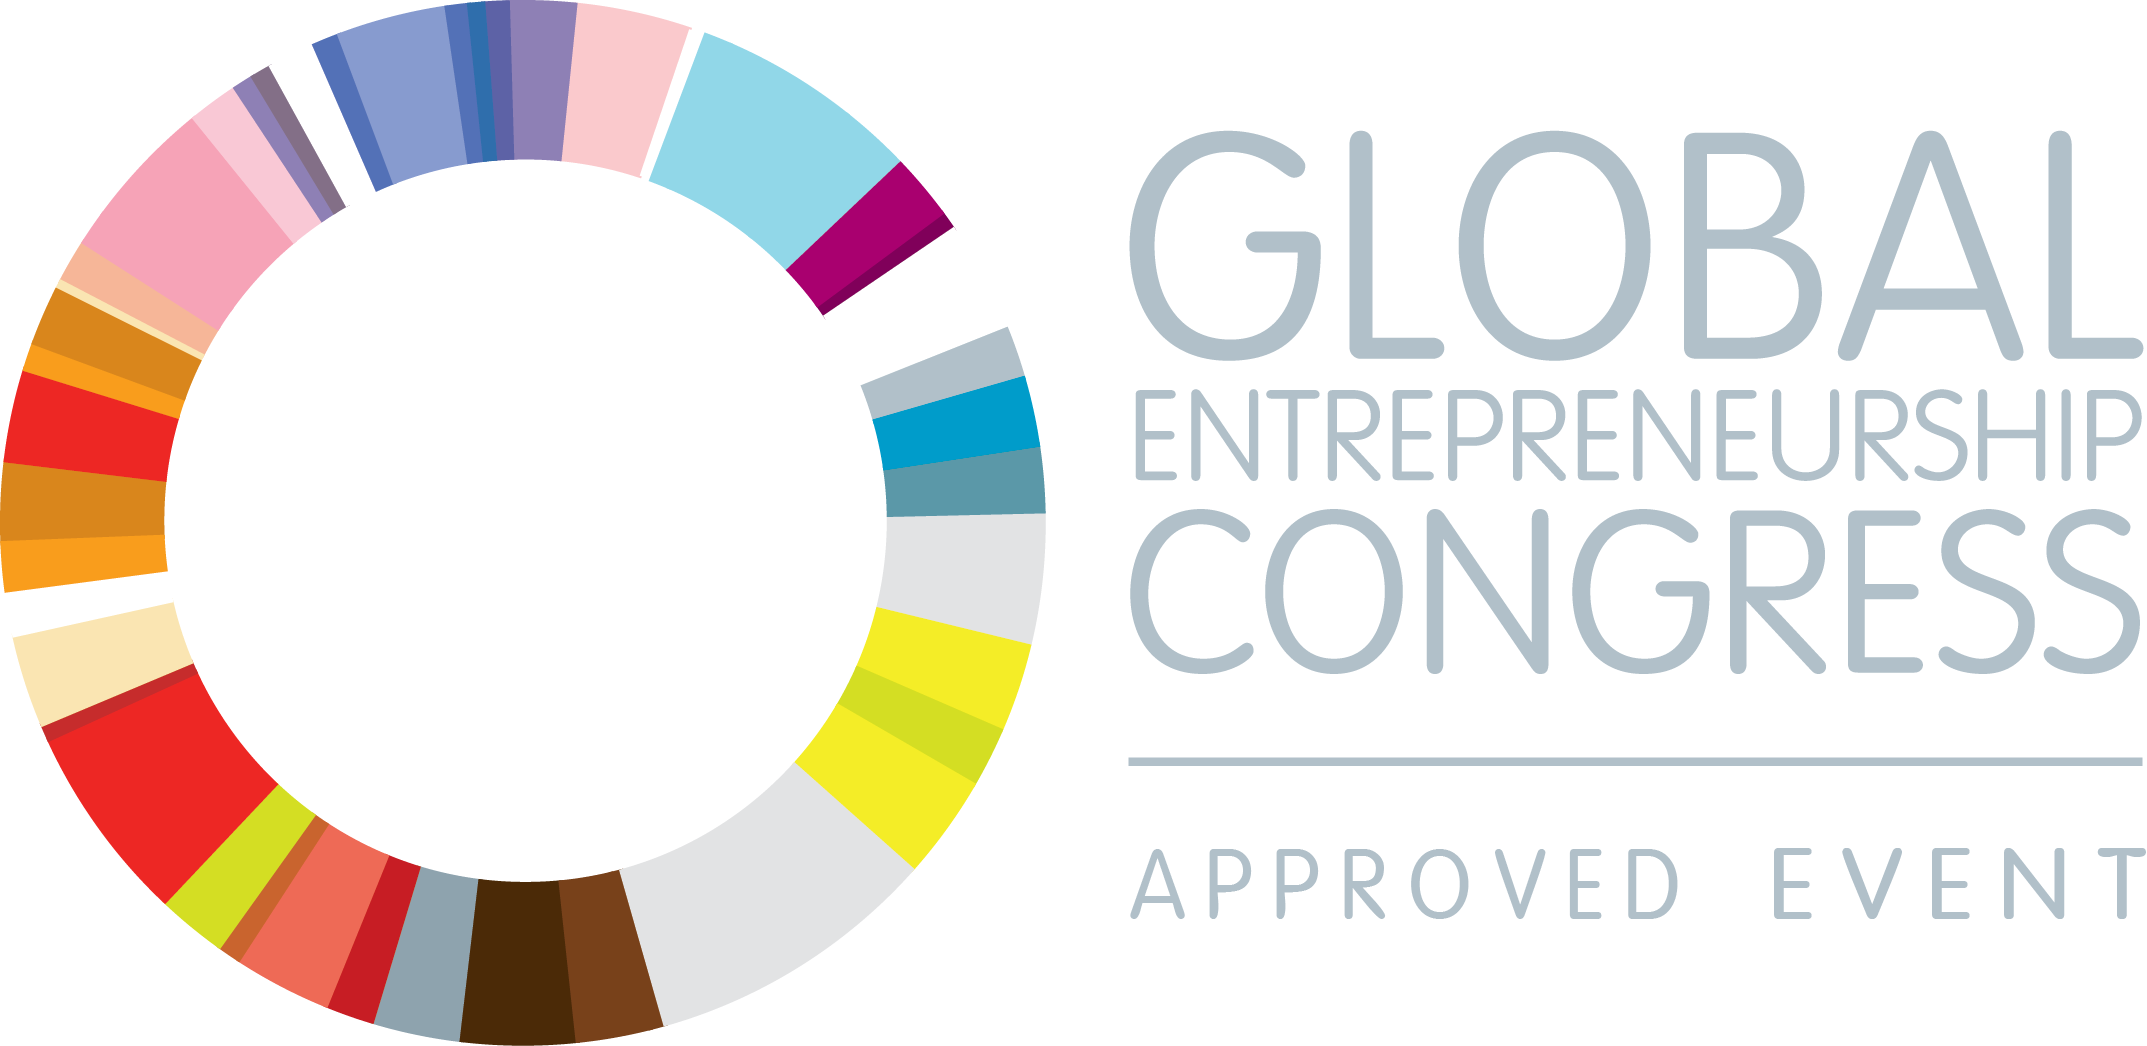 GEC_approved_event